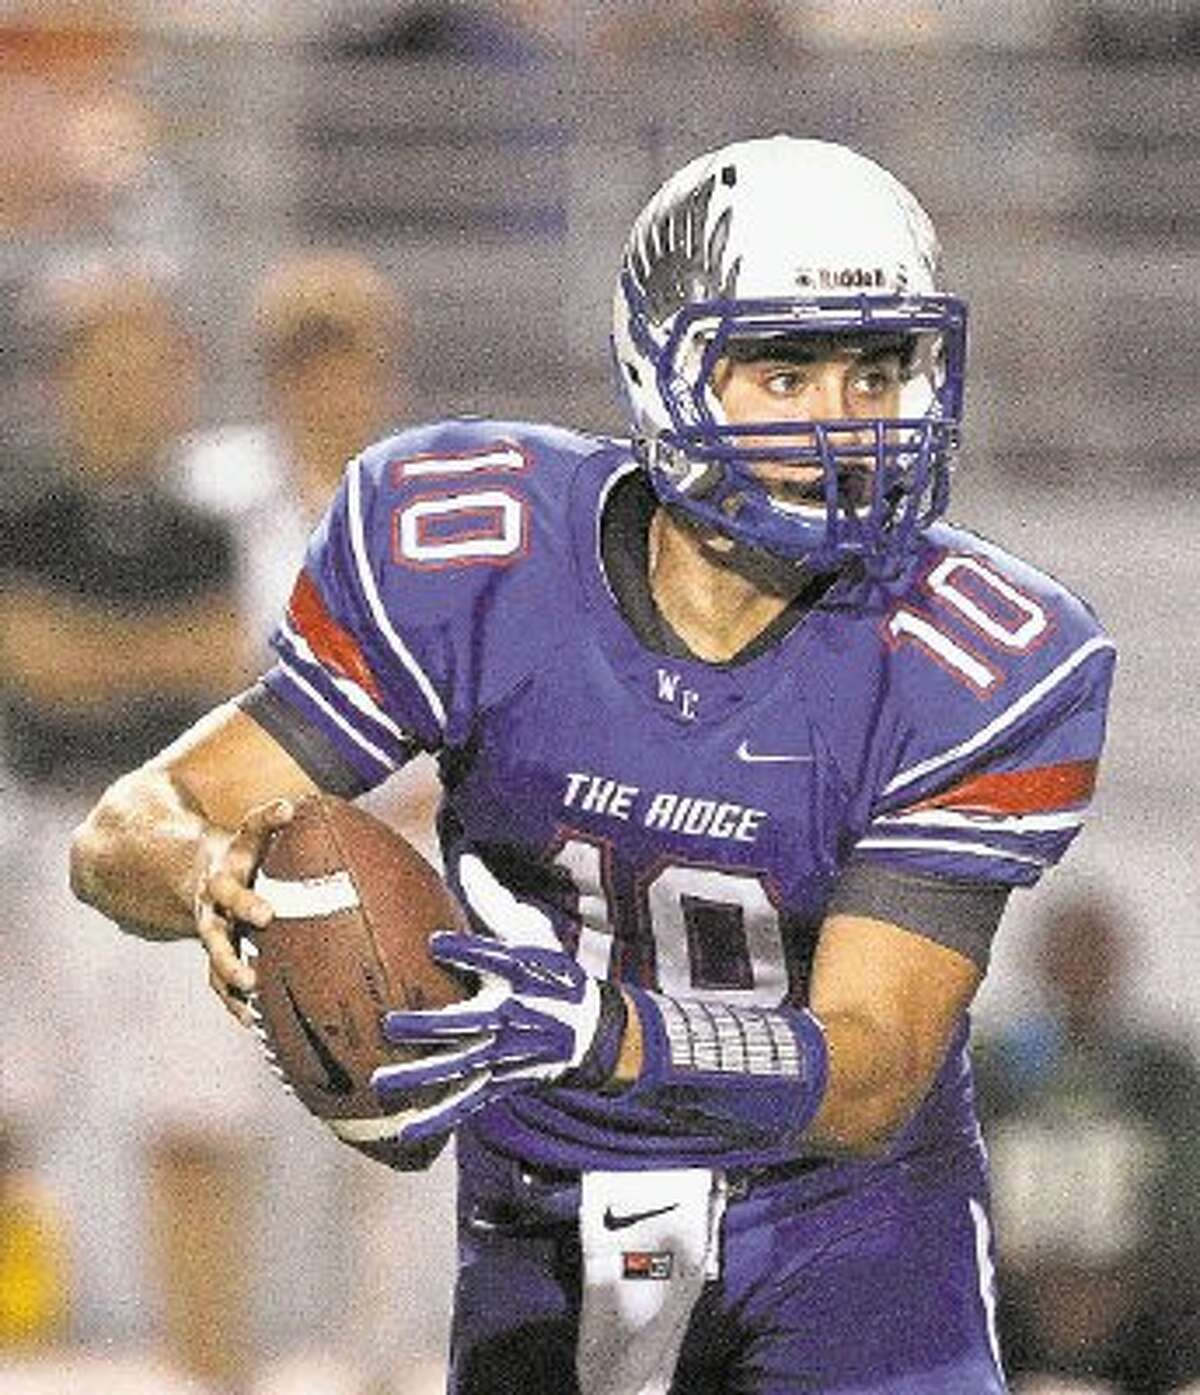 Oak Ridge quarterback Braden Letney wonThe Courier's Montgomery County Player of the Week award for Week 7.The sophomore ran for 151 yards and two touchdowns (58 and 69 yards) on six carries and completed 5 of 6 passes for 130 yards and two touchdowns (58 and 25 yards) in a 41-18 victory at Conroe.